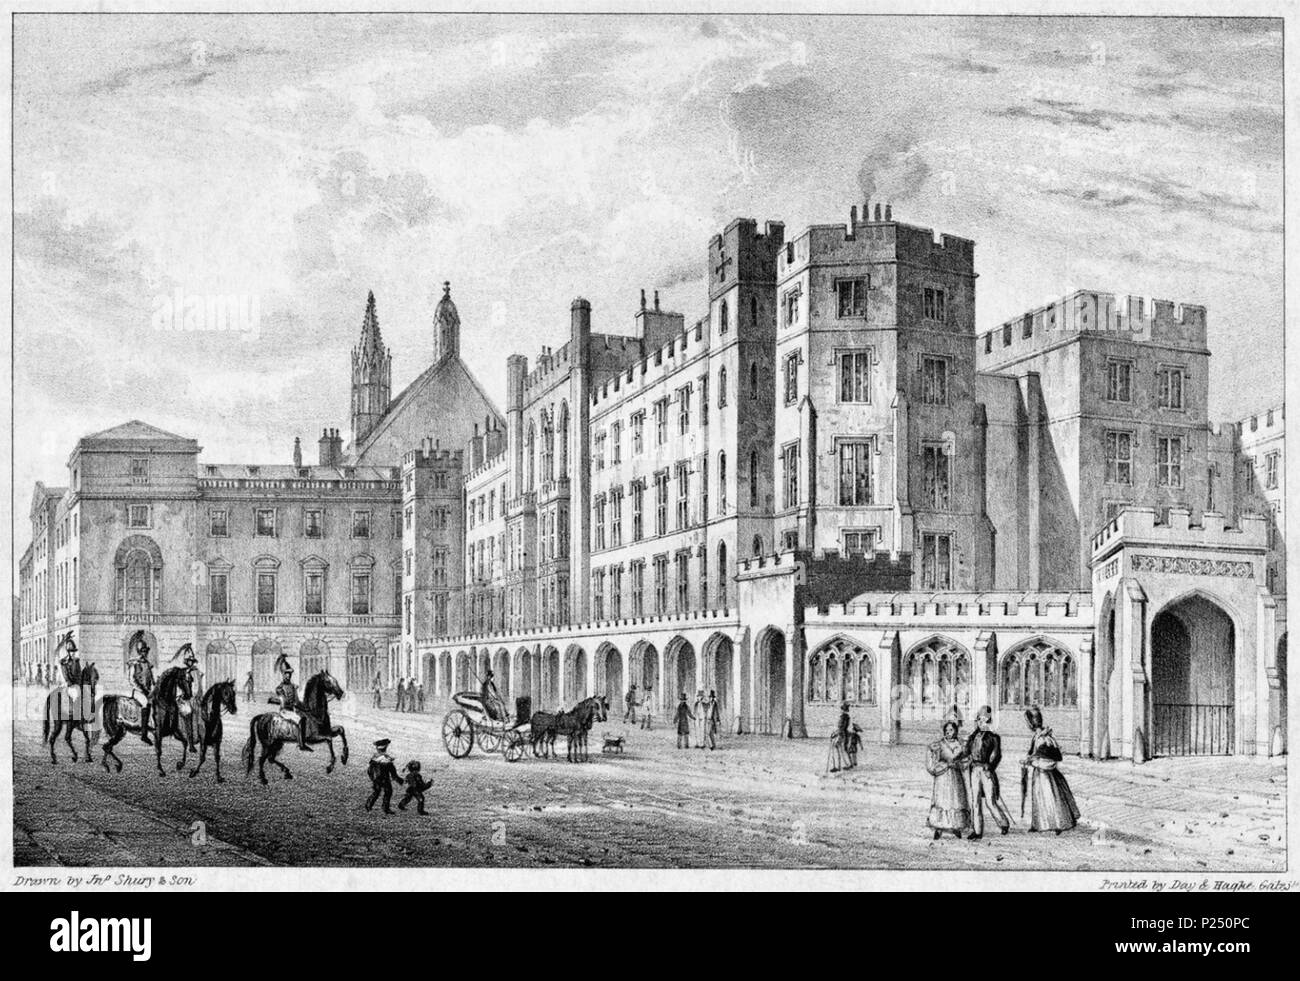 . English: Drawn by J. Shury & Son, Printed by Day & Haghe . circa 1834. Drawn by J. Shury & Son, Printed by Day & Haghe 267 Print of Houses of Parliament before 1834 Fire - Stock Image